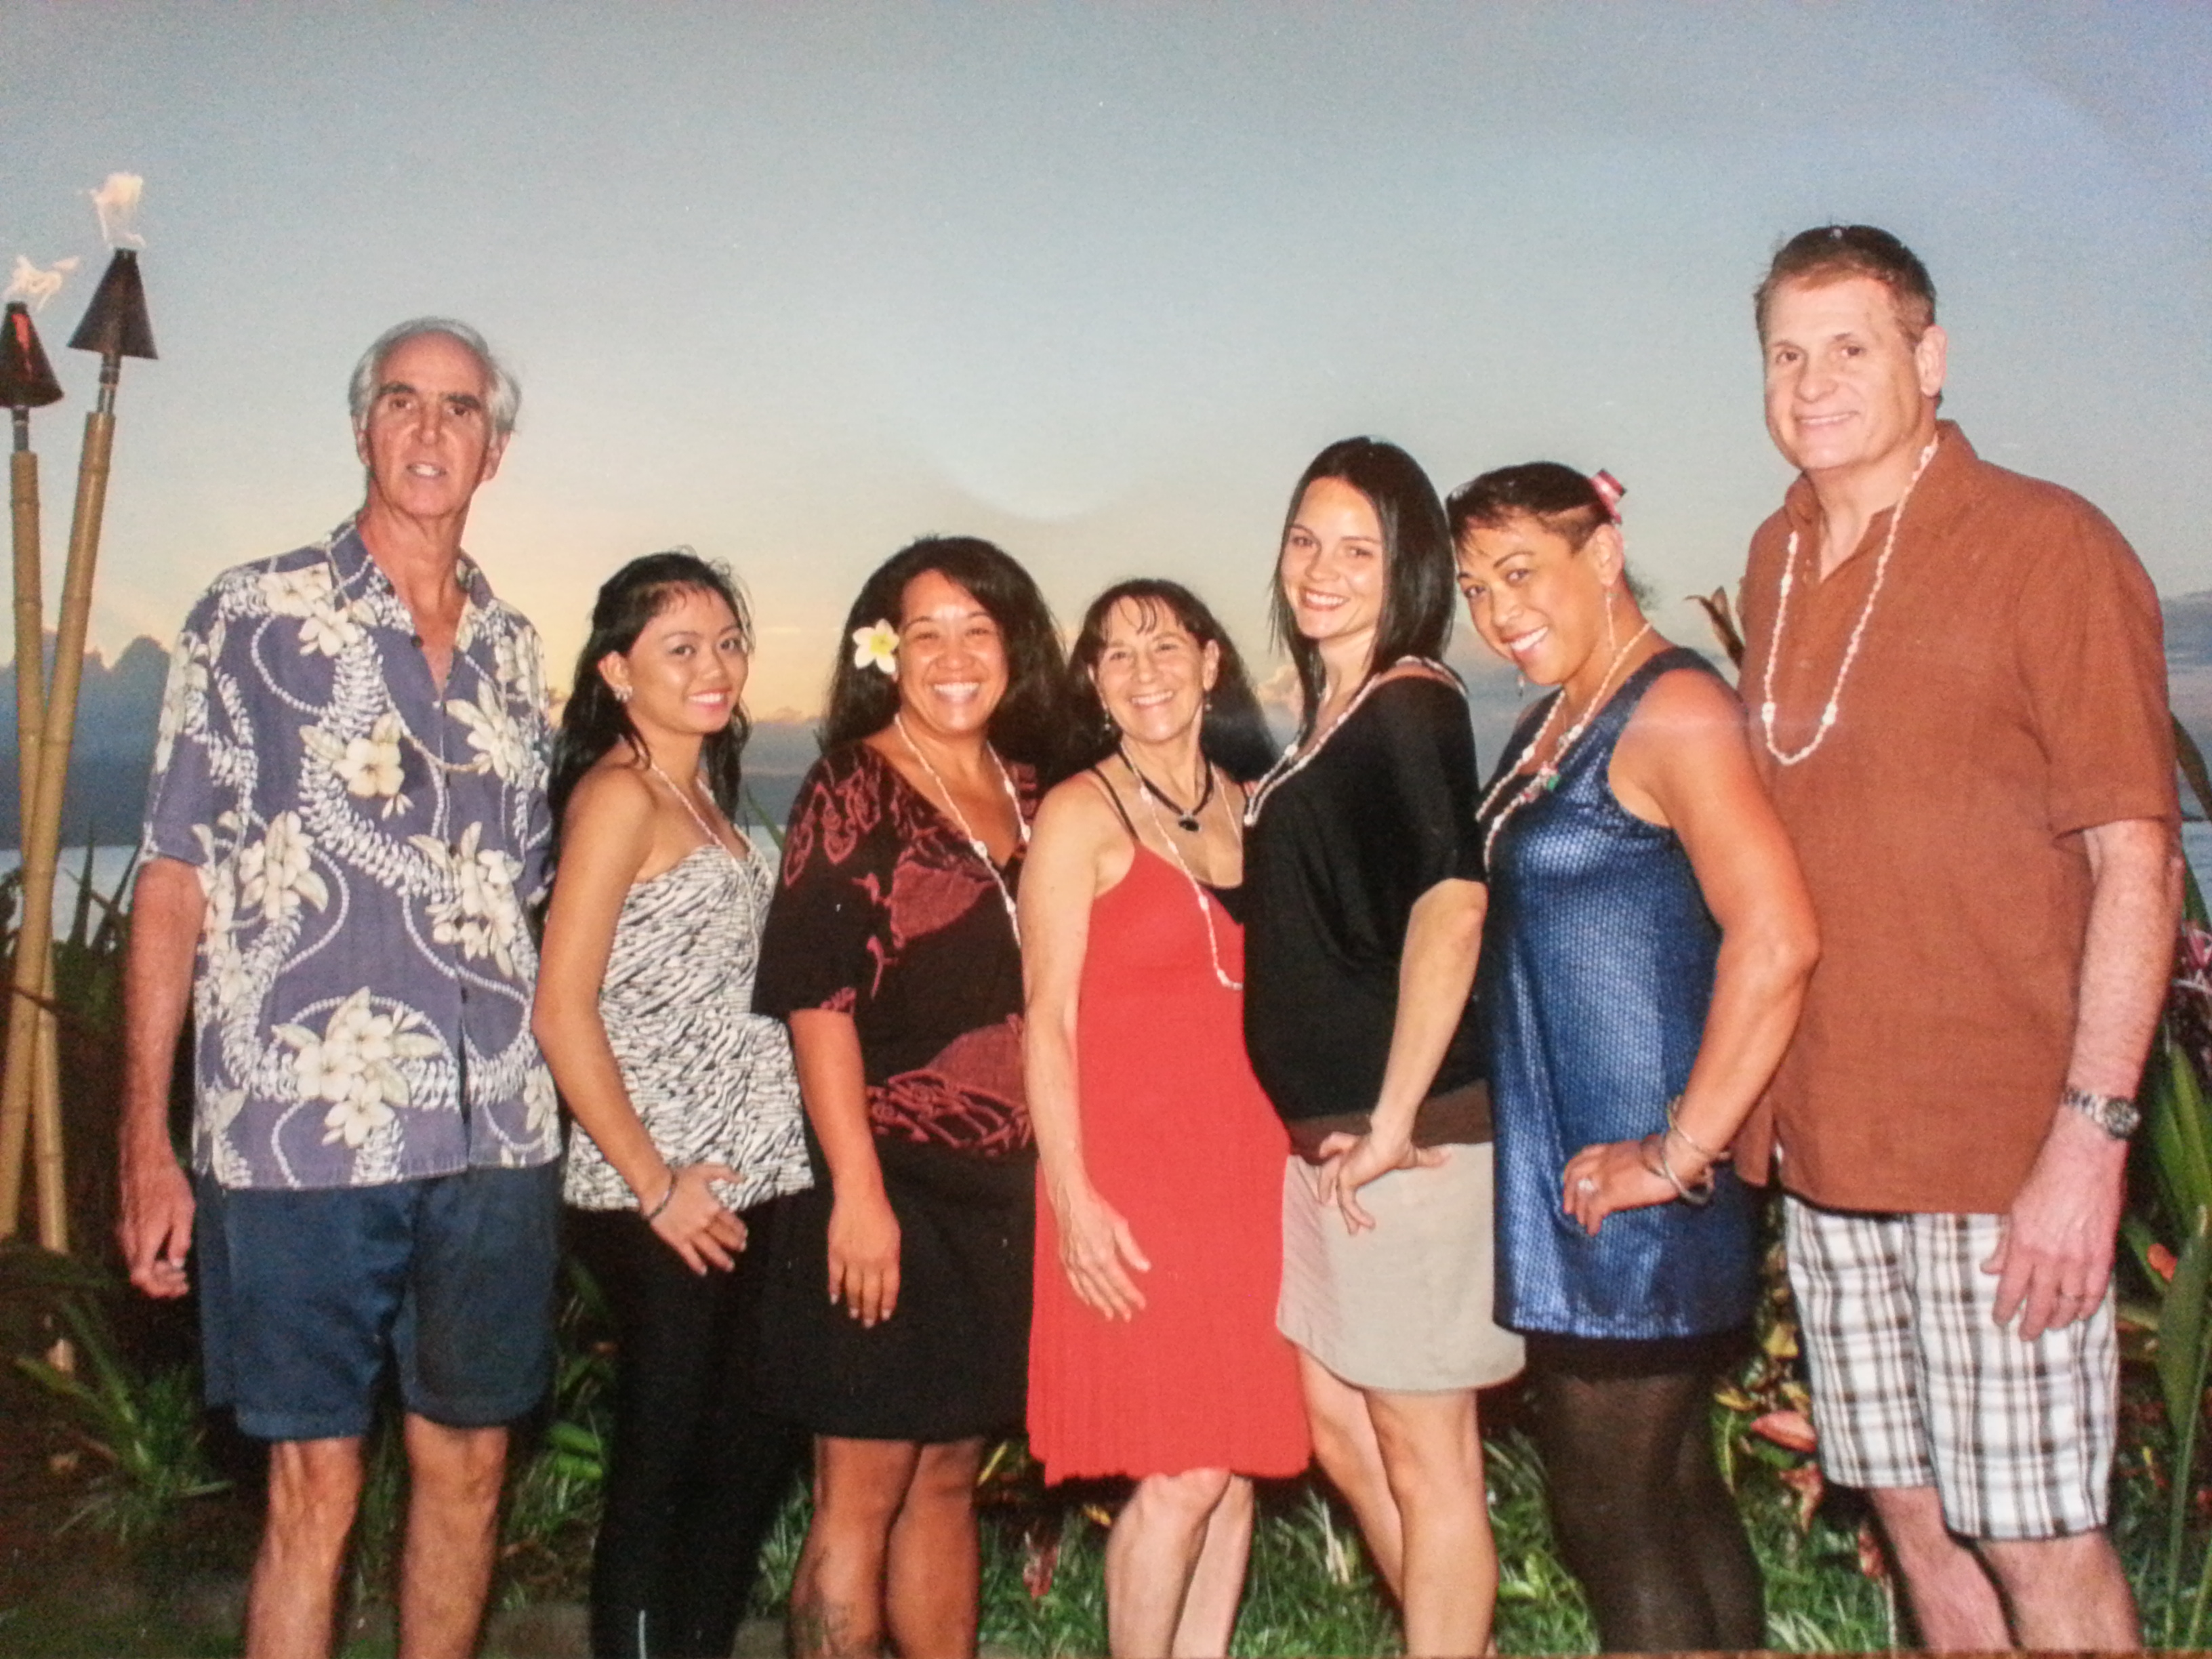 Dr. Conrad Theiss DMD and Implant Center of Maui's dedicated staff in Kahului, HI